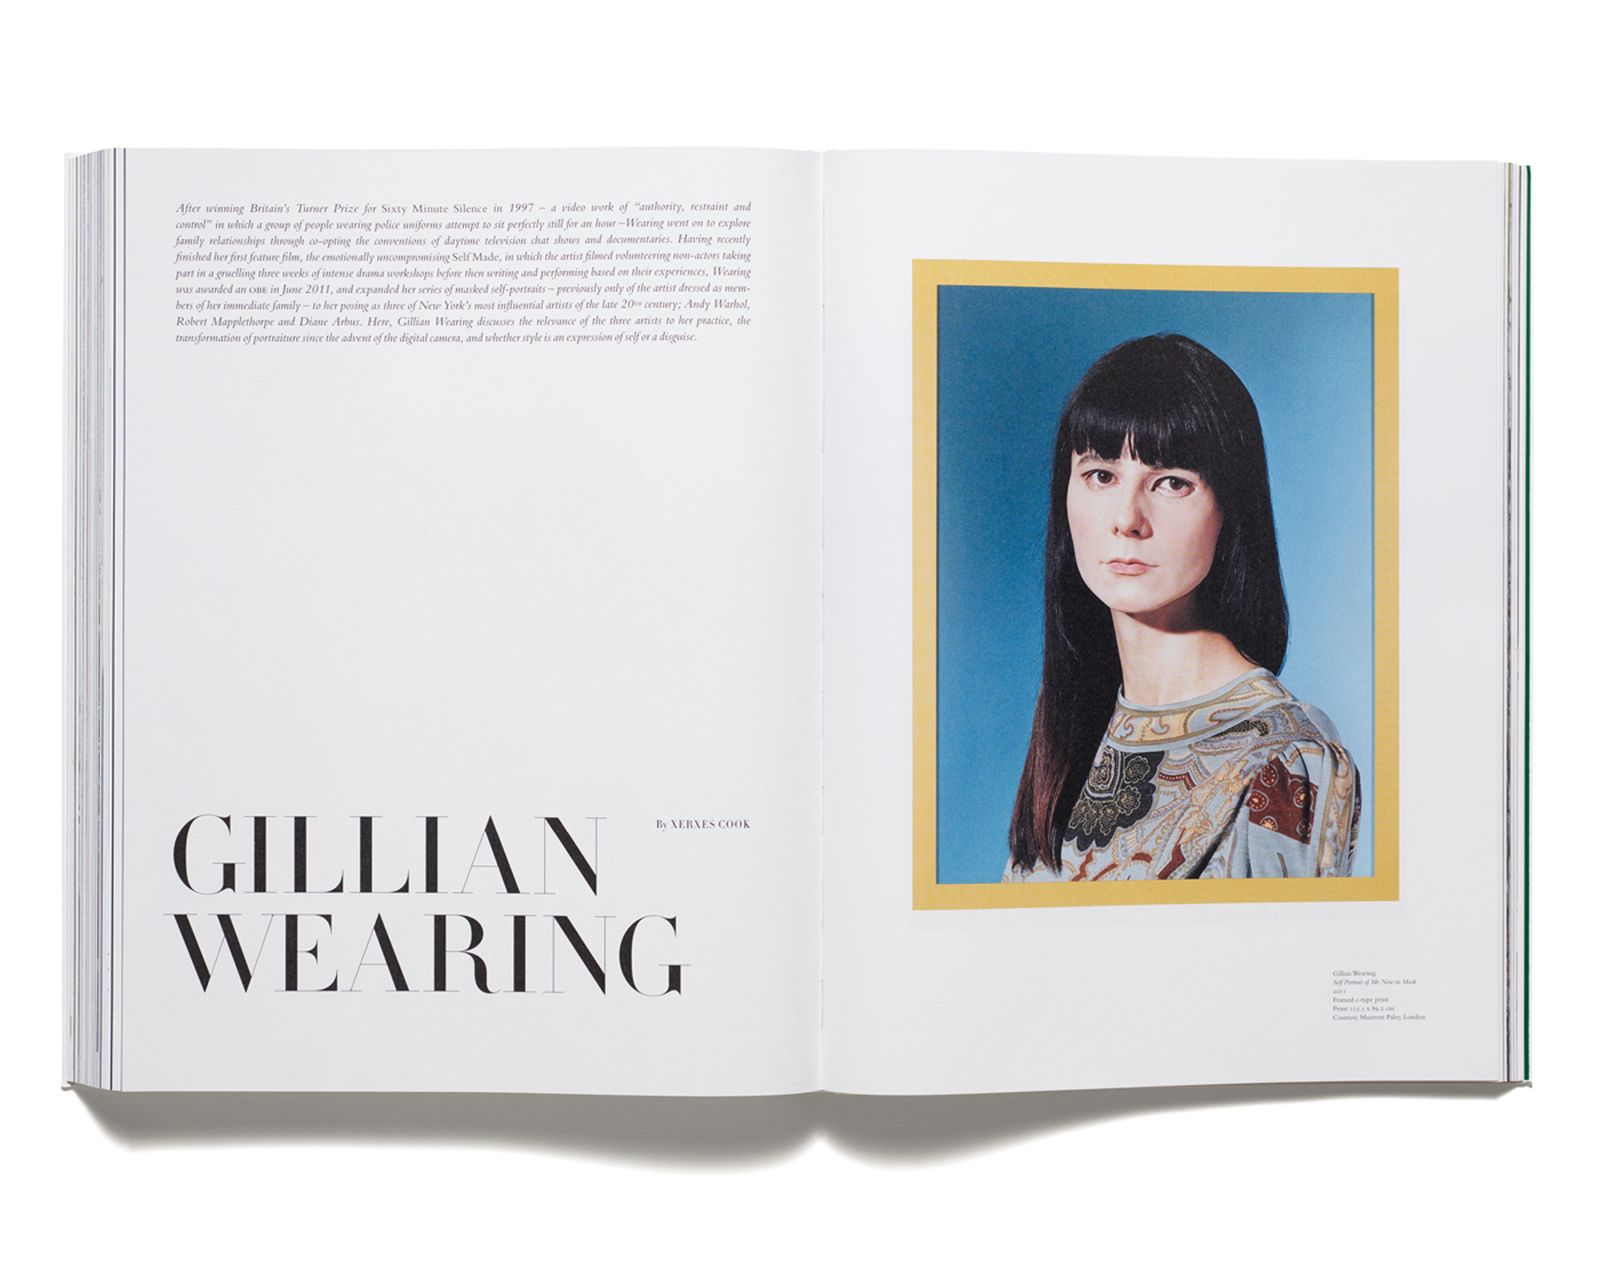 GILLIAN WEARING - Gillian Wearing interviewed by Xerxes Cook for 'Acne Paper' issue 13, 2012. Art work by Gillian Wearing.